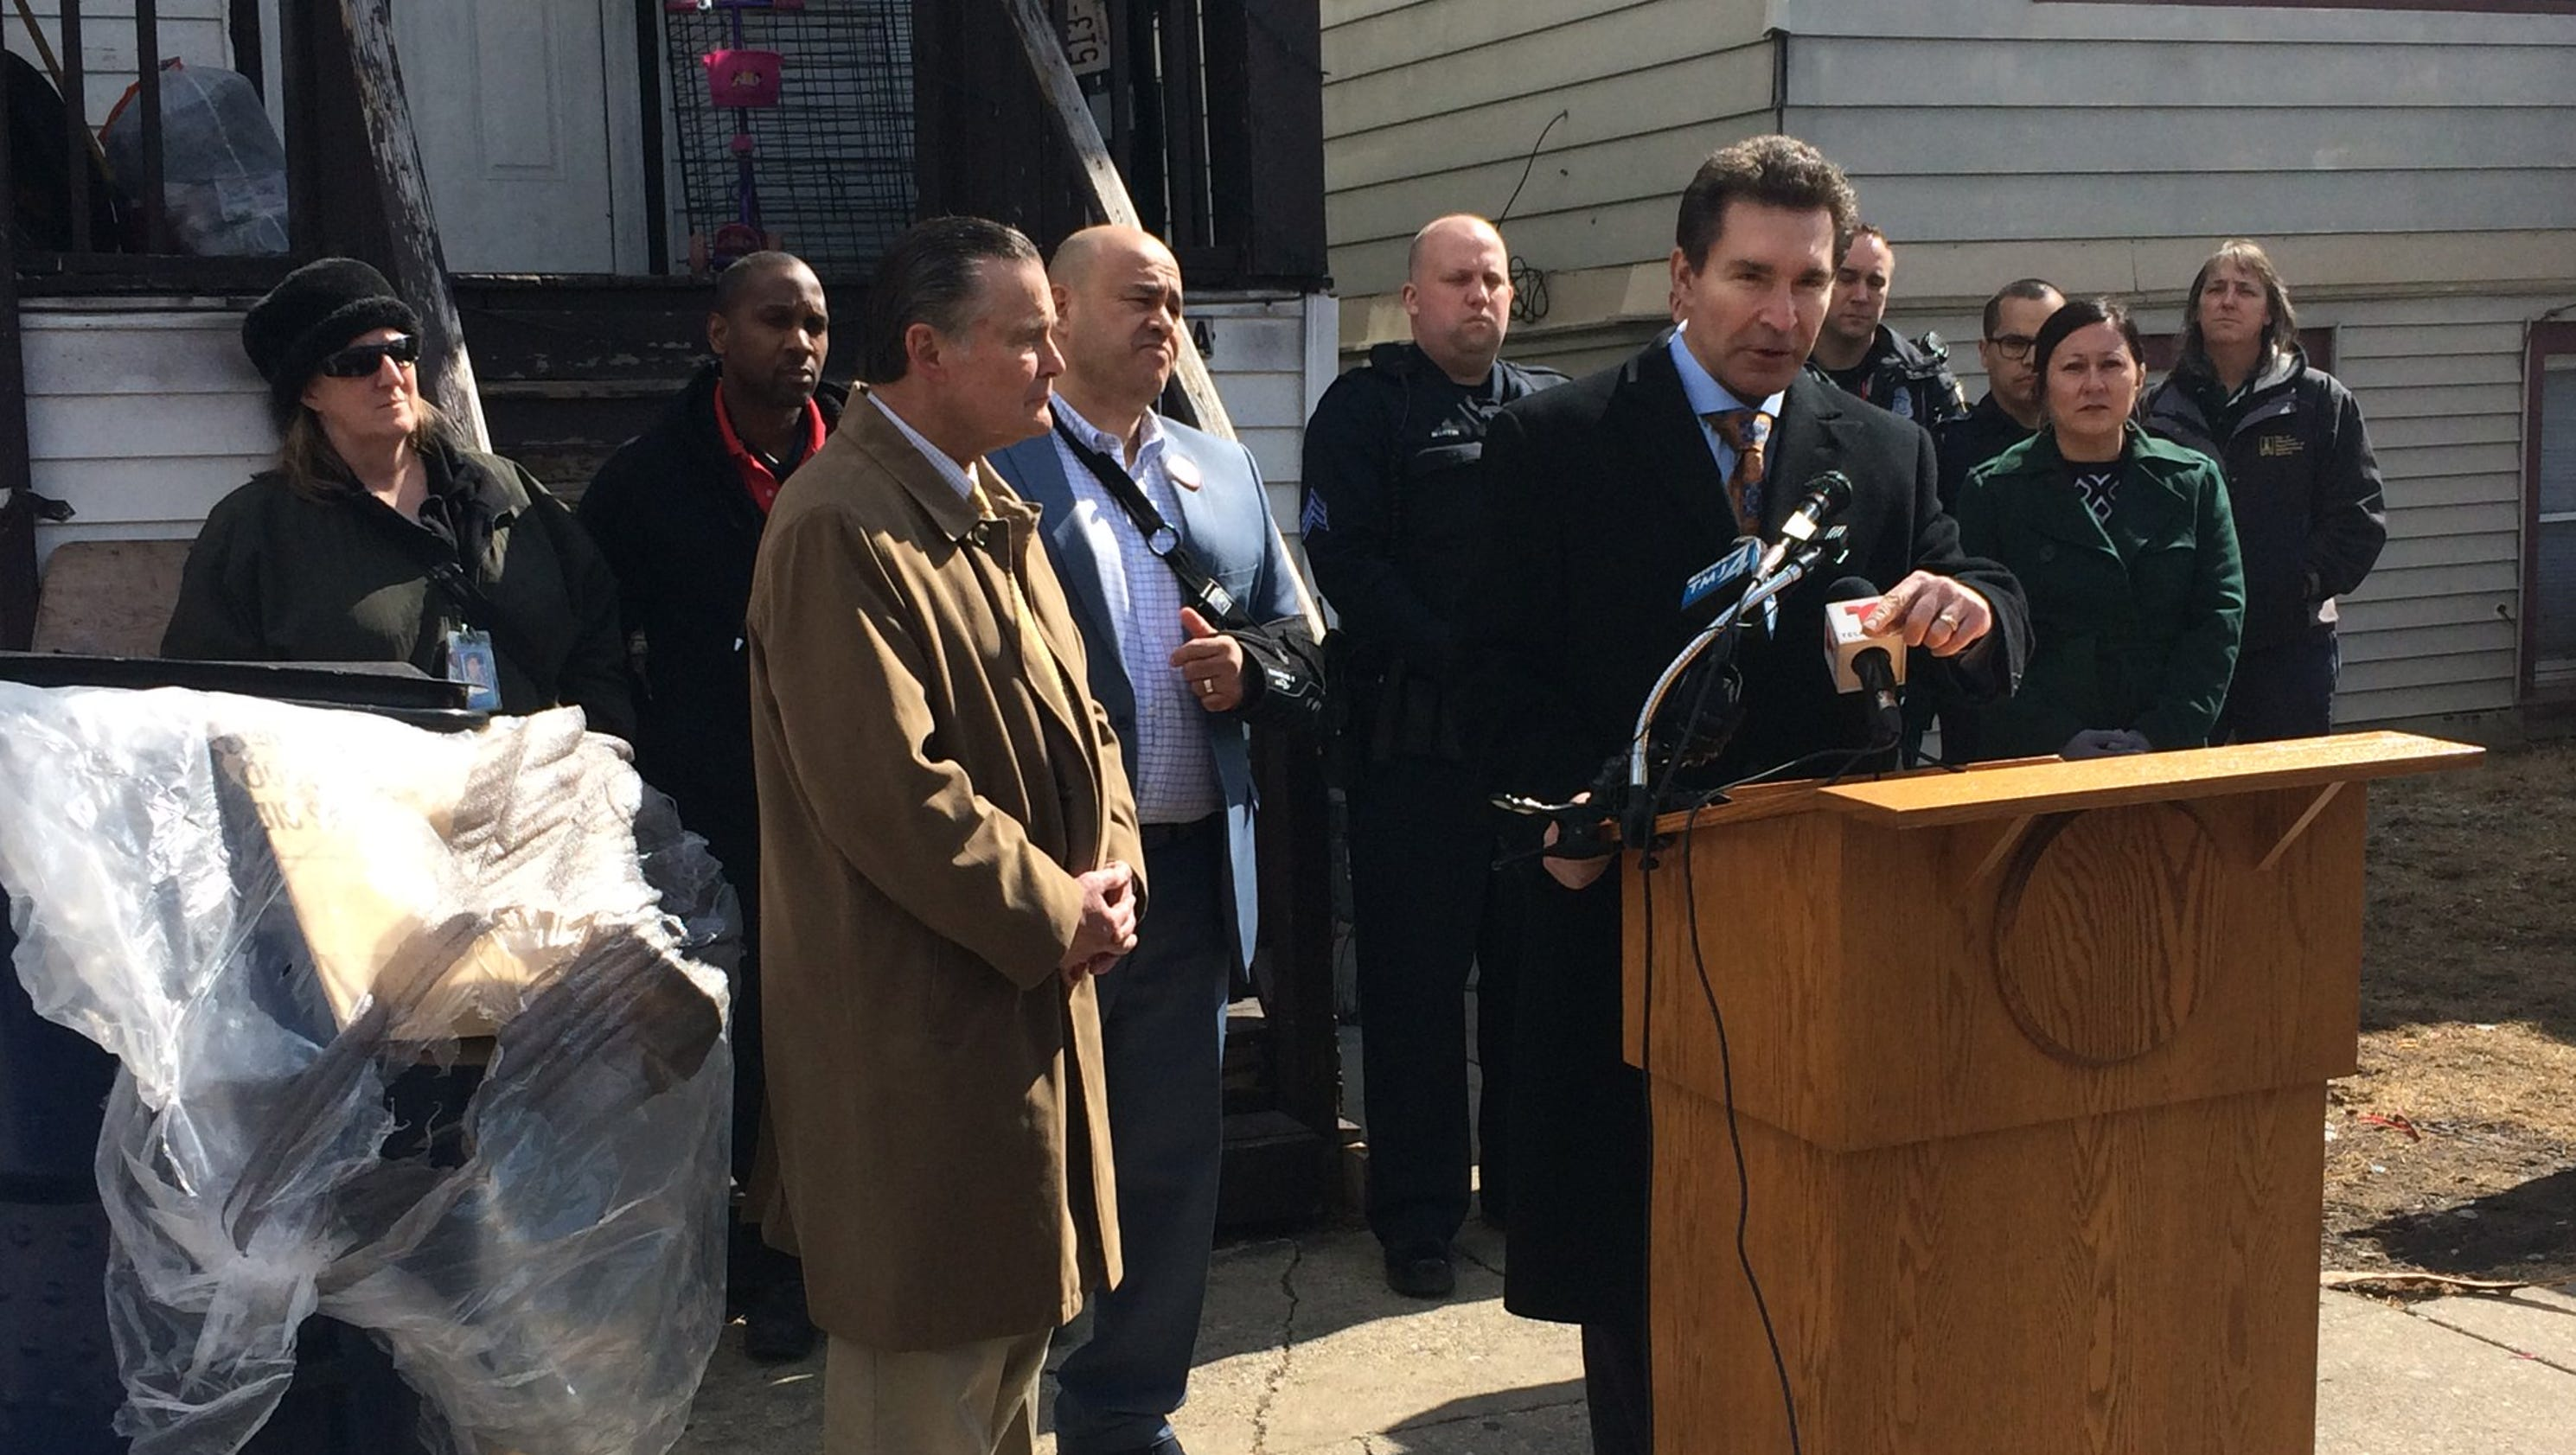 Milwaukee Sues Landlord Over Drug Dealing Nuisance Activity